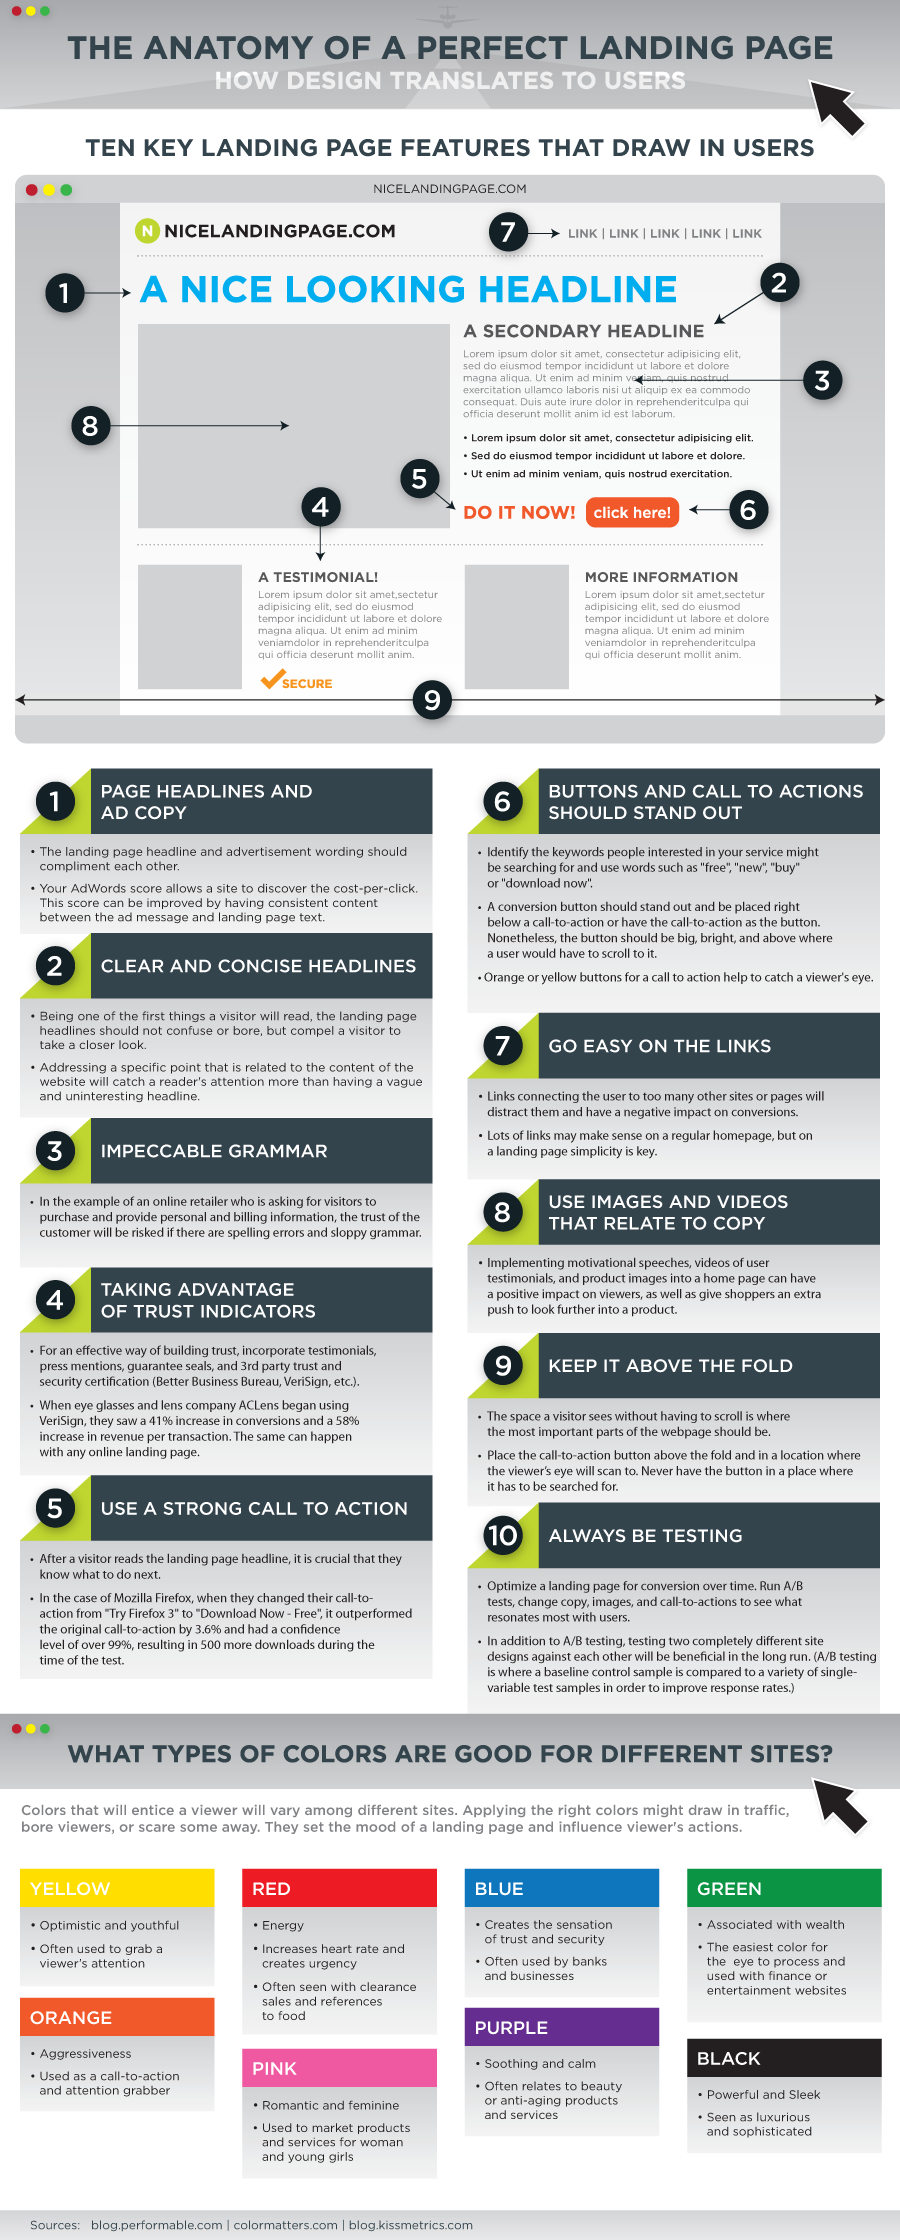 landingpage infographic1 Anatomy Of A Perfect Landing Page [INFOGRAPHIC]